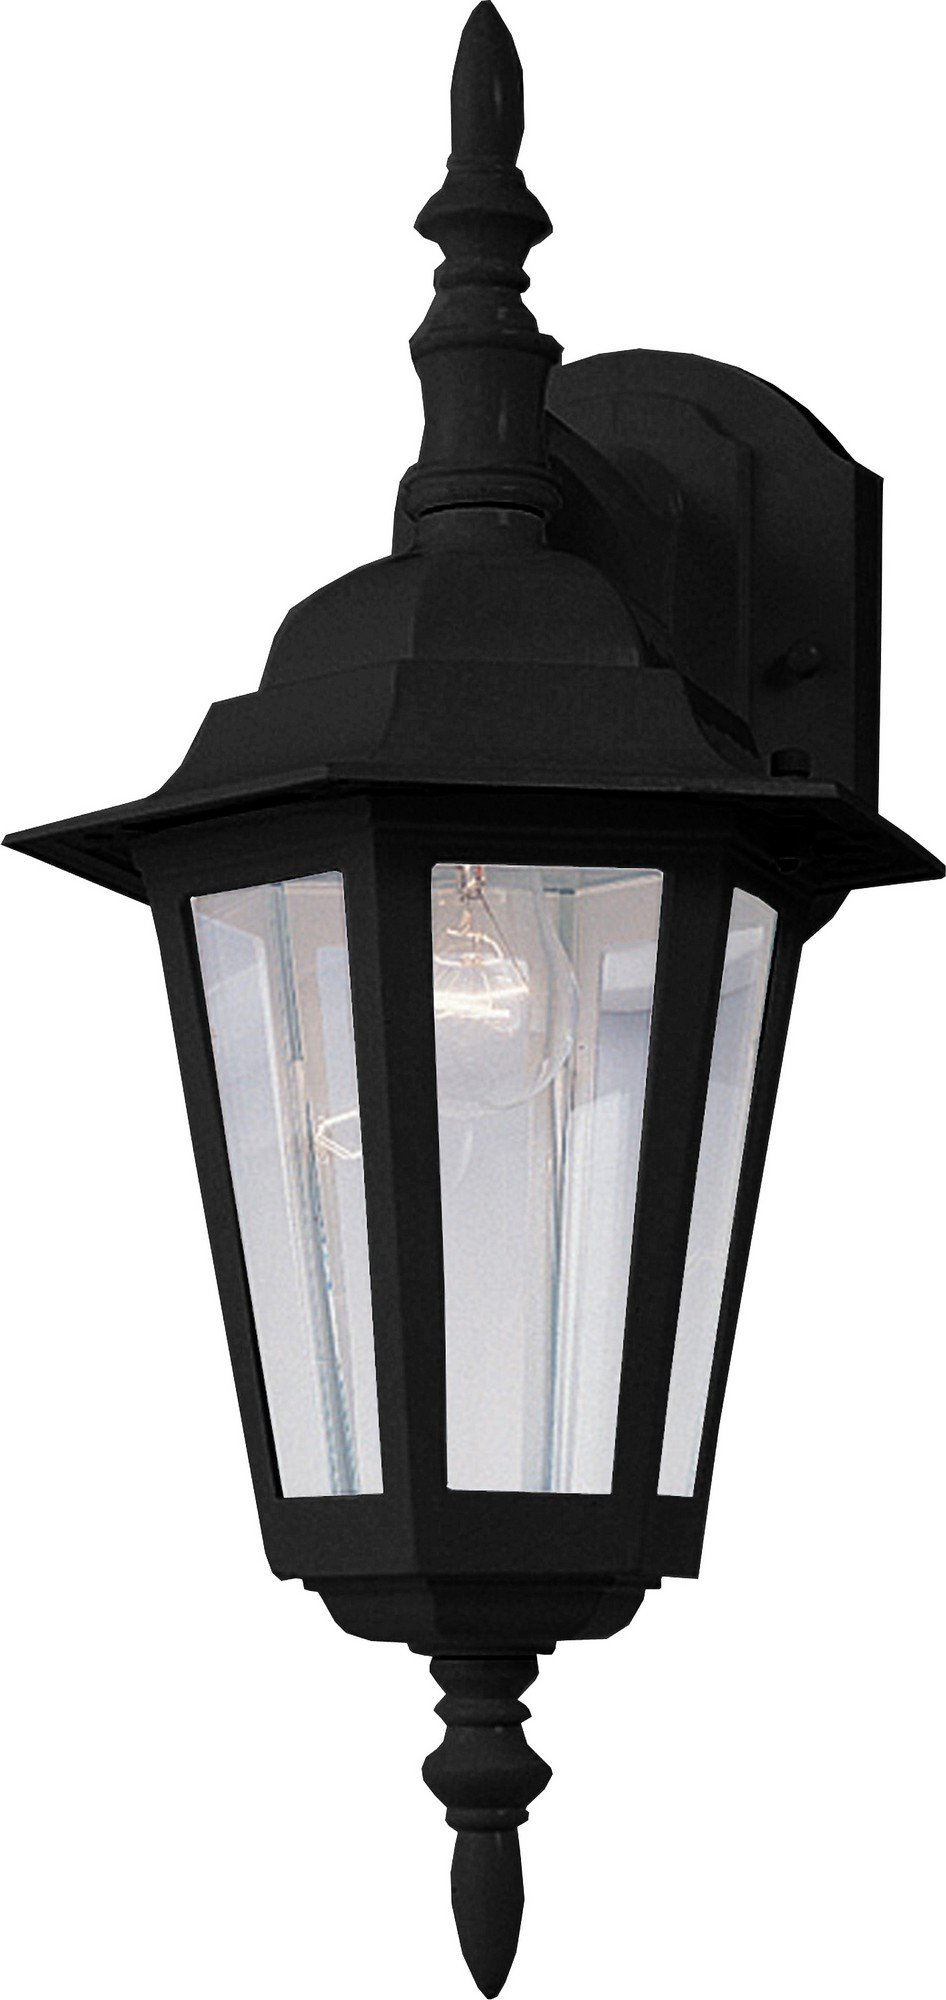 Maxim 3002CLBK Builder Cast 1-Light Outdoor Wall Mount, Black Finish, Clear Glass, MB Incandescent Incandescent Bulb , 100W Max., Damp Safety Rating, Standard Dimmable, Glass Shade Material, 5750 Rated Lumens